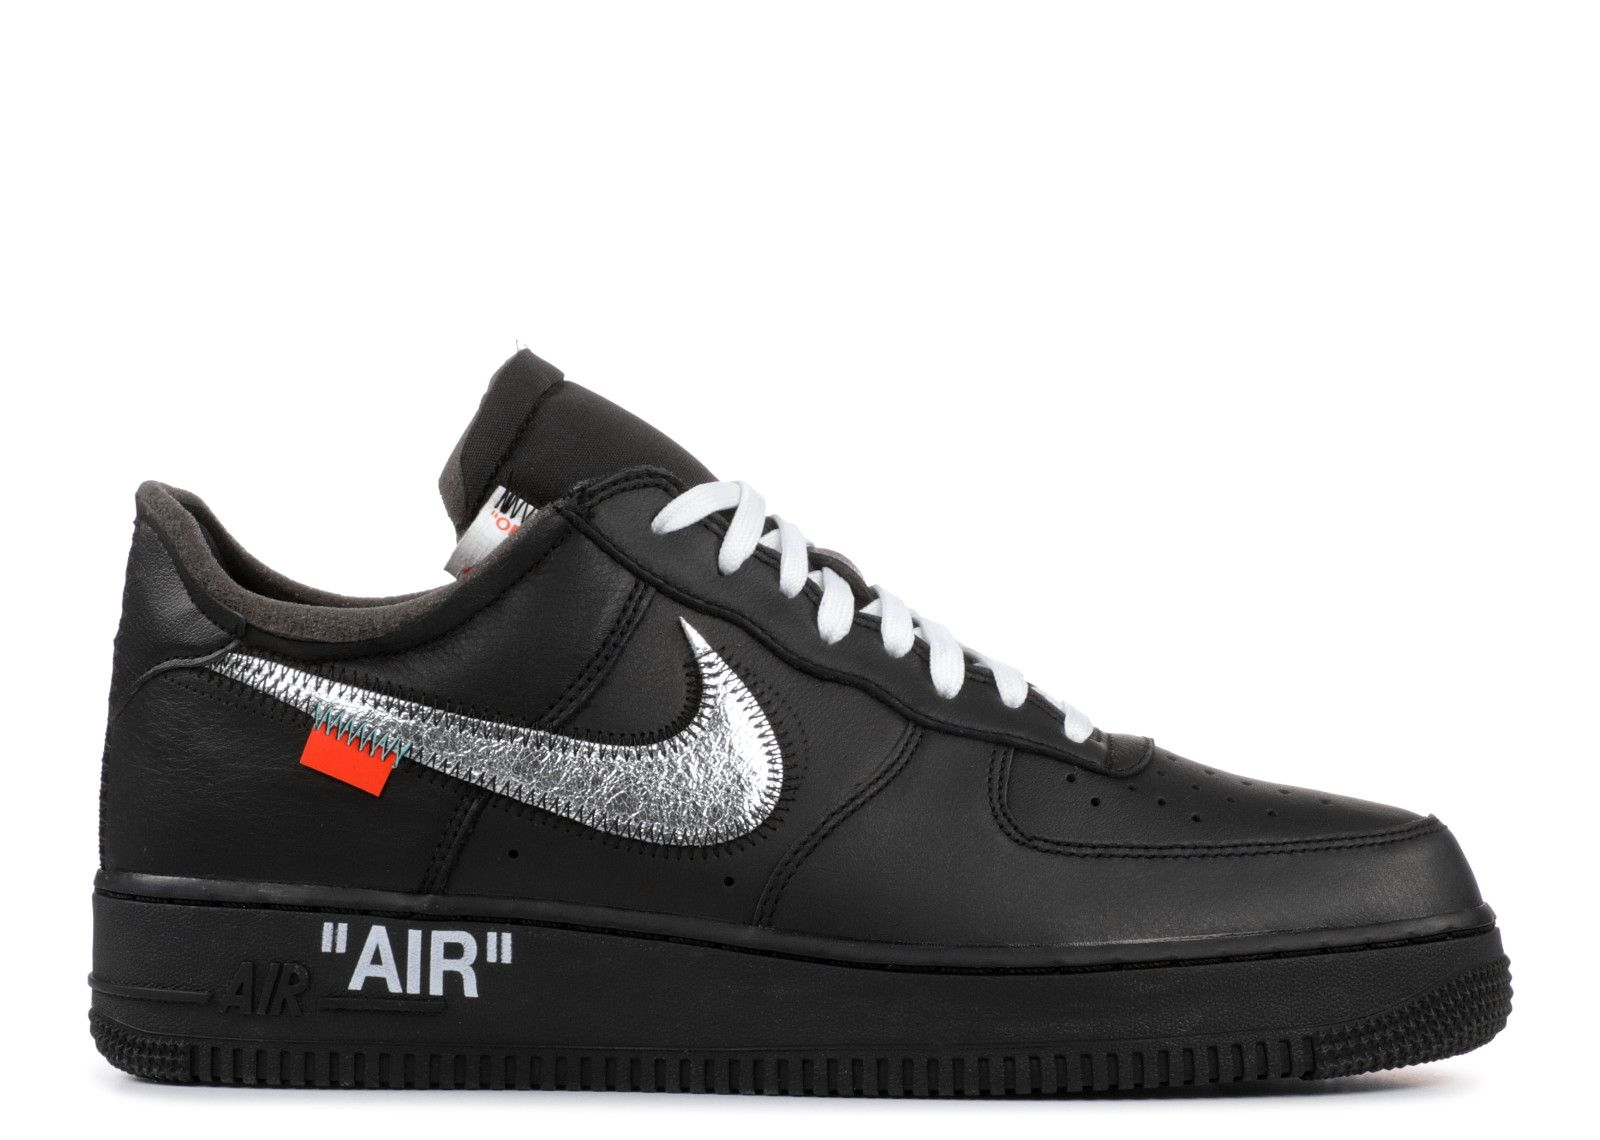 Moma X Virgil Nike Air Force One Low '07 Black Copuon, Price